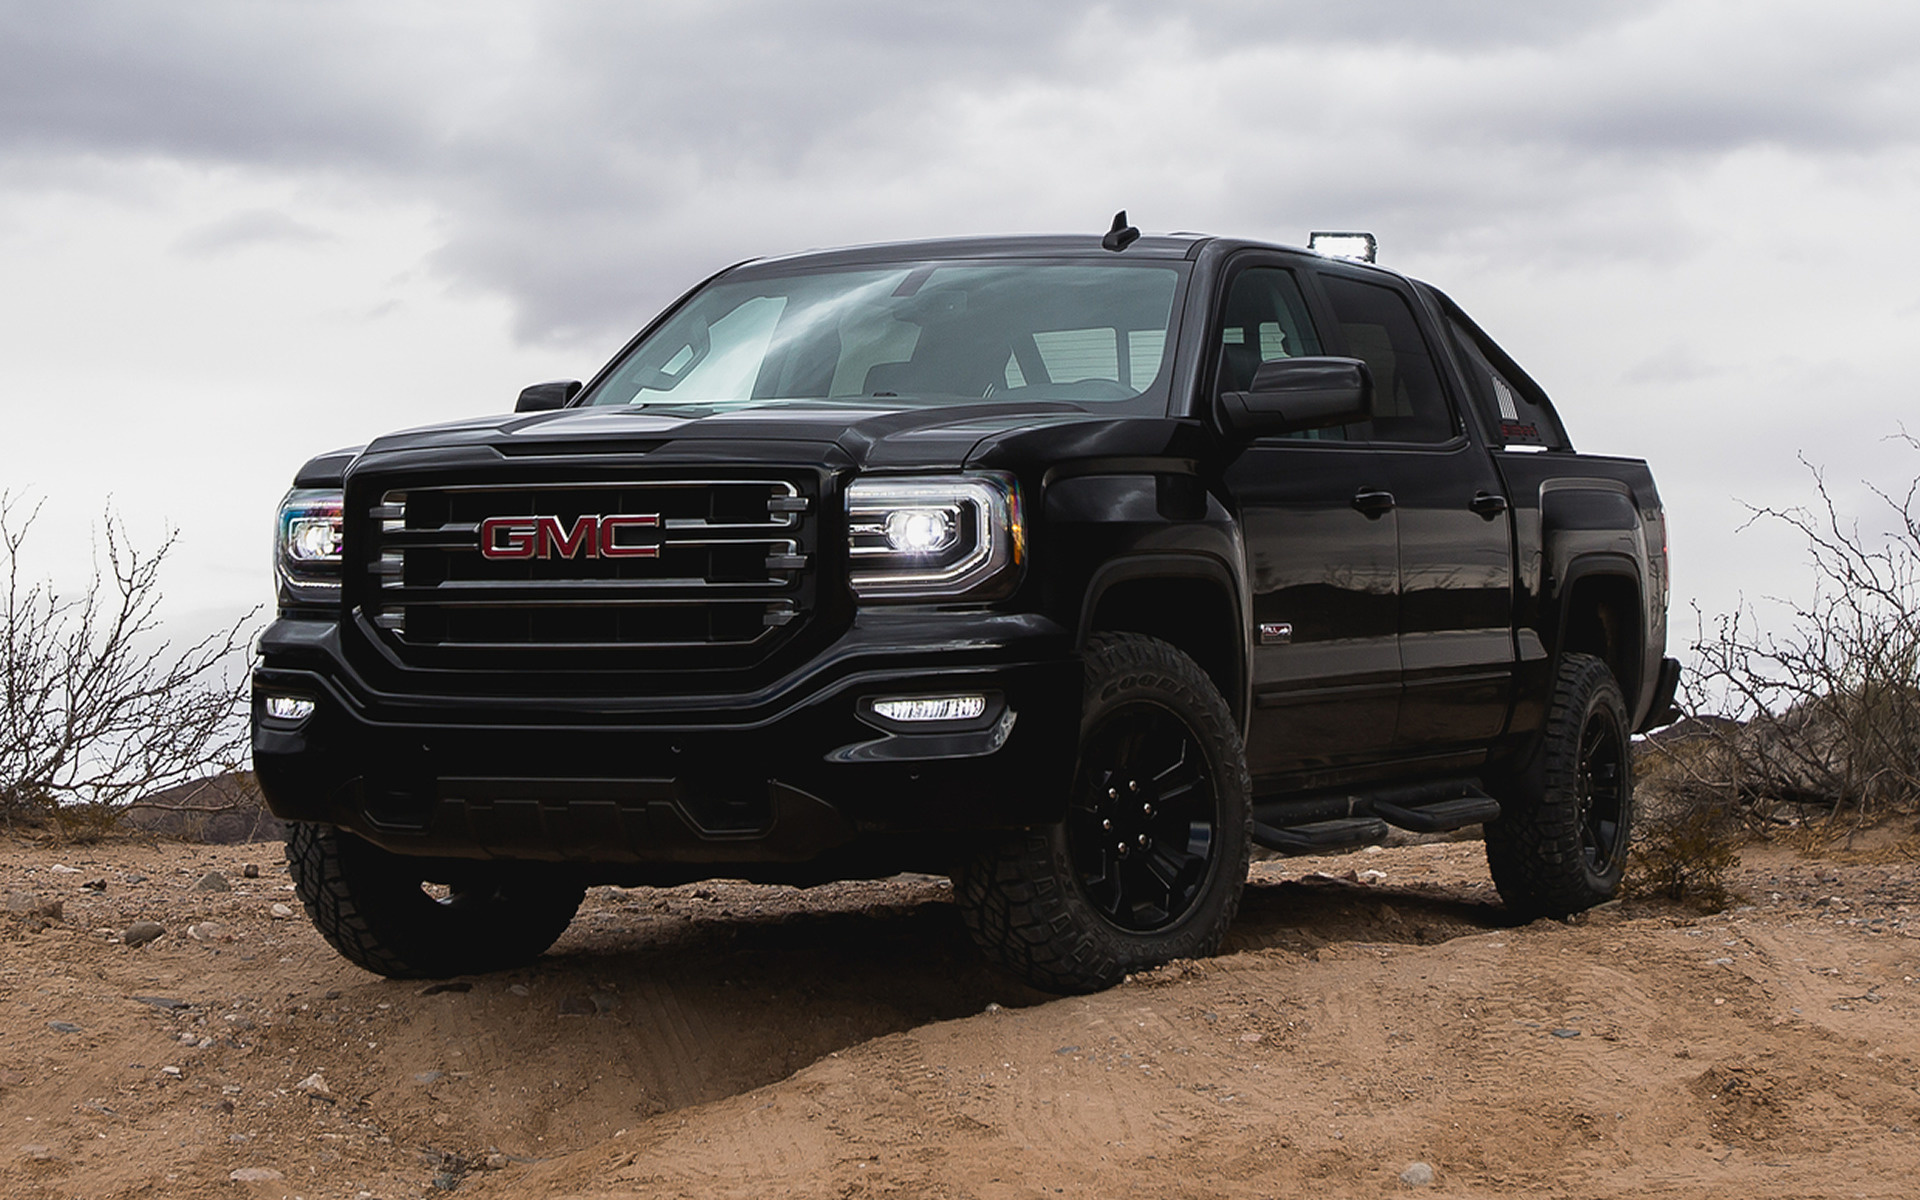 Gmc Denali 2017 >> GMC Sierra 1500 All Terrain X Crew Cab (2016) Wallpapers and HD Images - Car Pixel